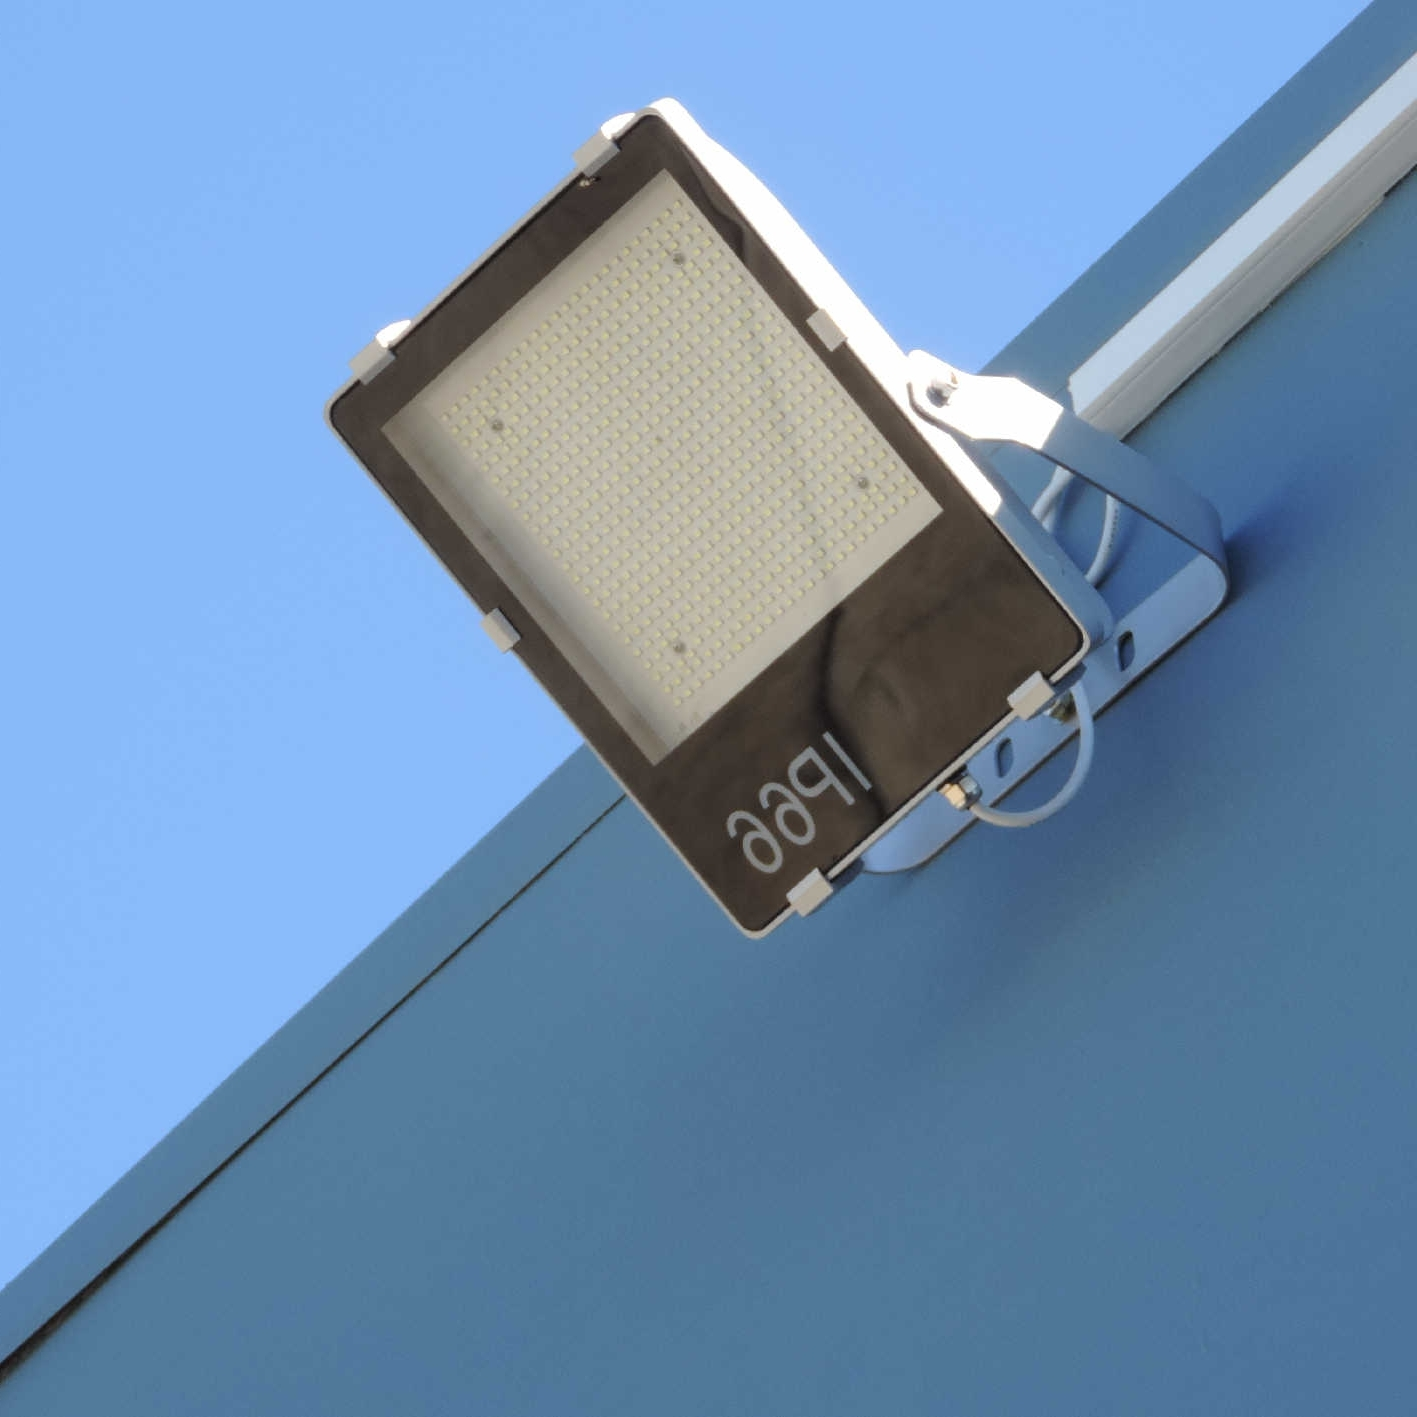 Recent Light : Black Wall Mounted Flood Lights Blue Simple Classic With Regard To Outdoor Wall Flood Lights (Gallery 19 of 20)